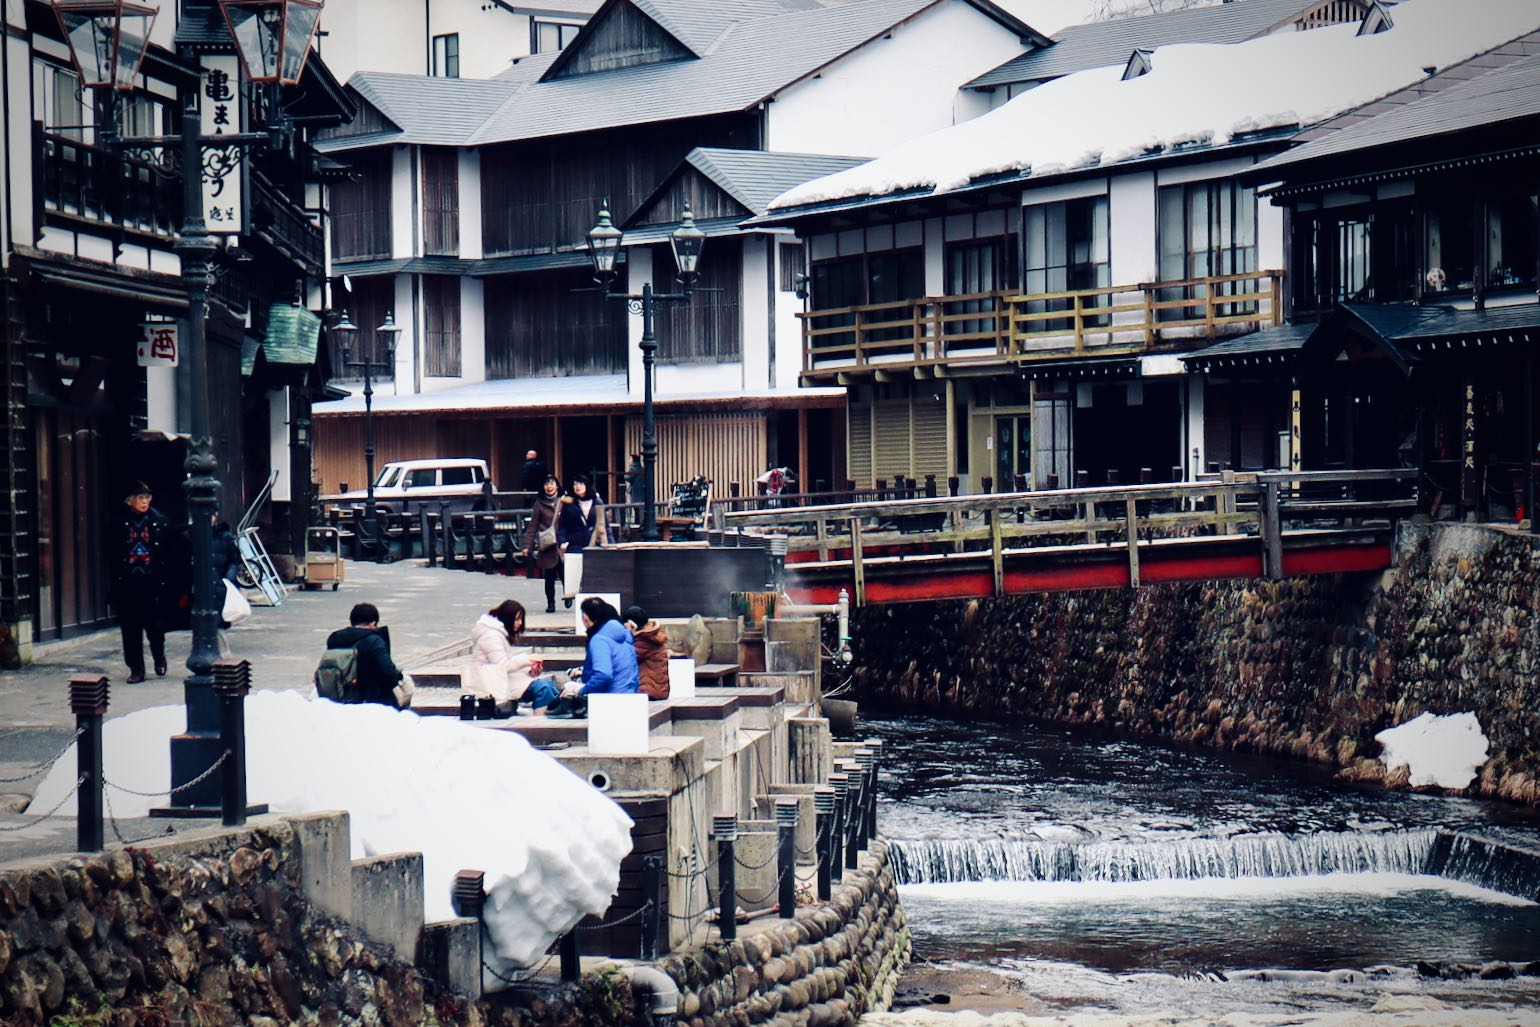 Ginzan Onsen - Fujiya ryokan in the background